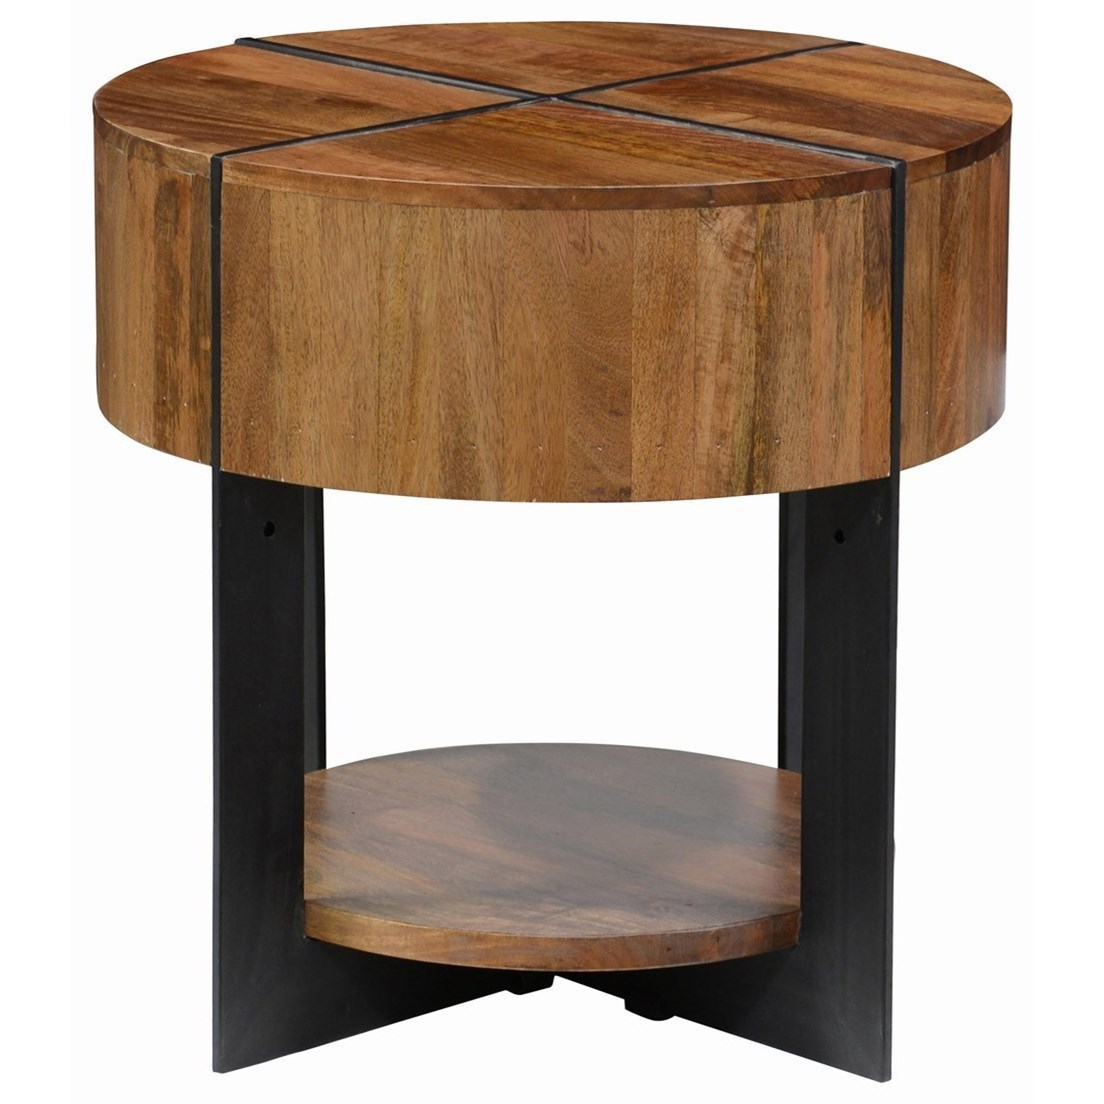 Desmond Round Mango Wood End Table With Iron Base By Classic Home